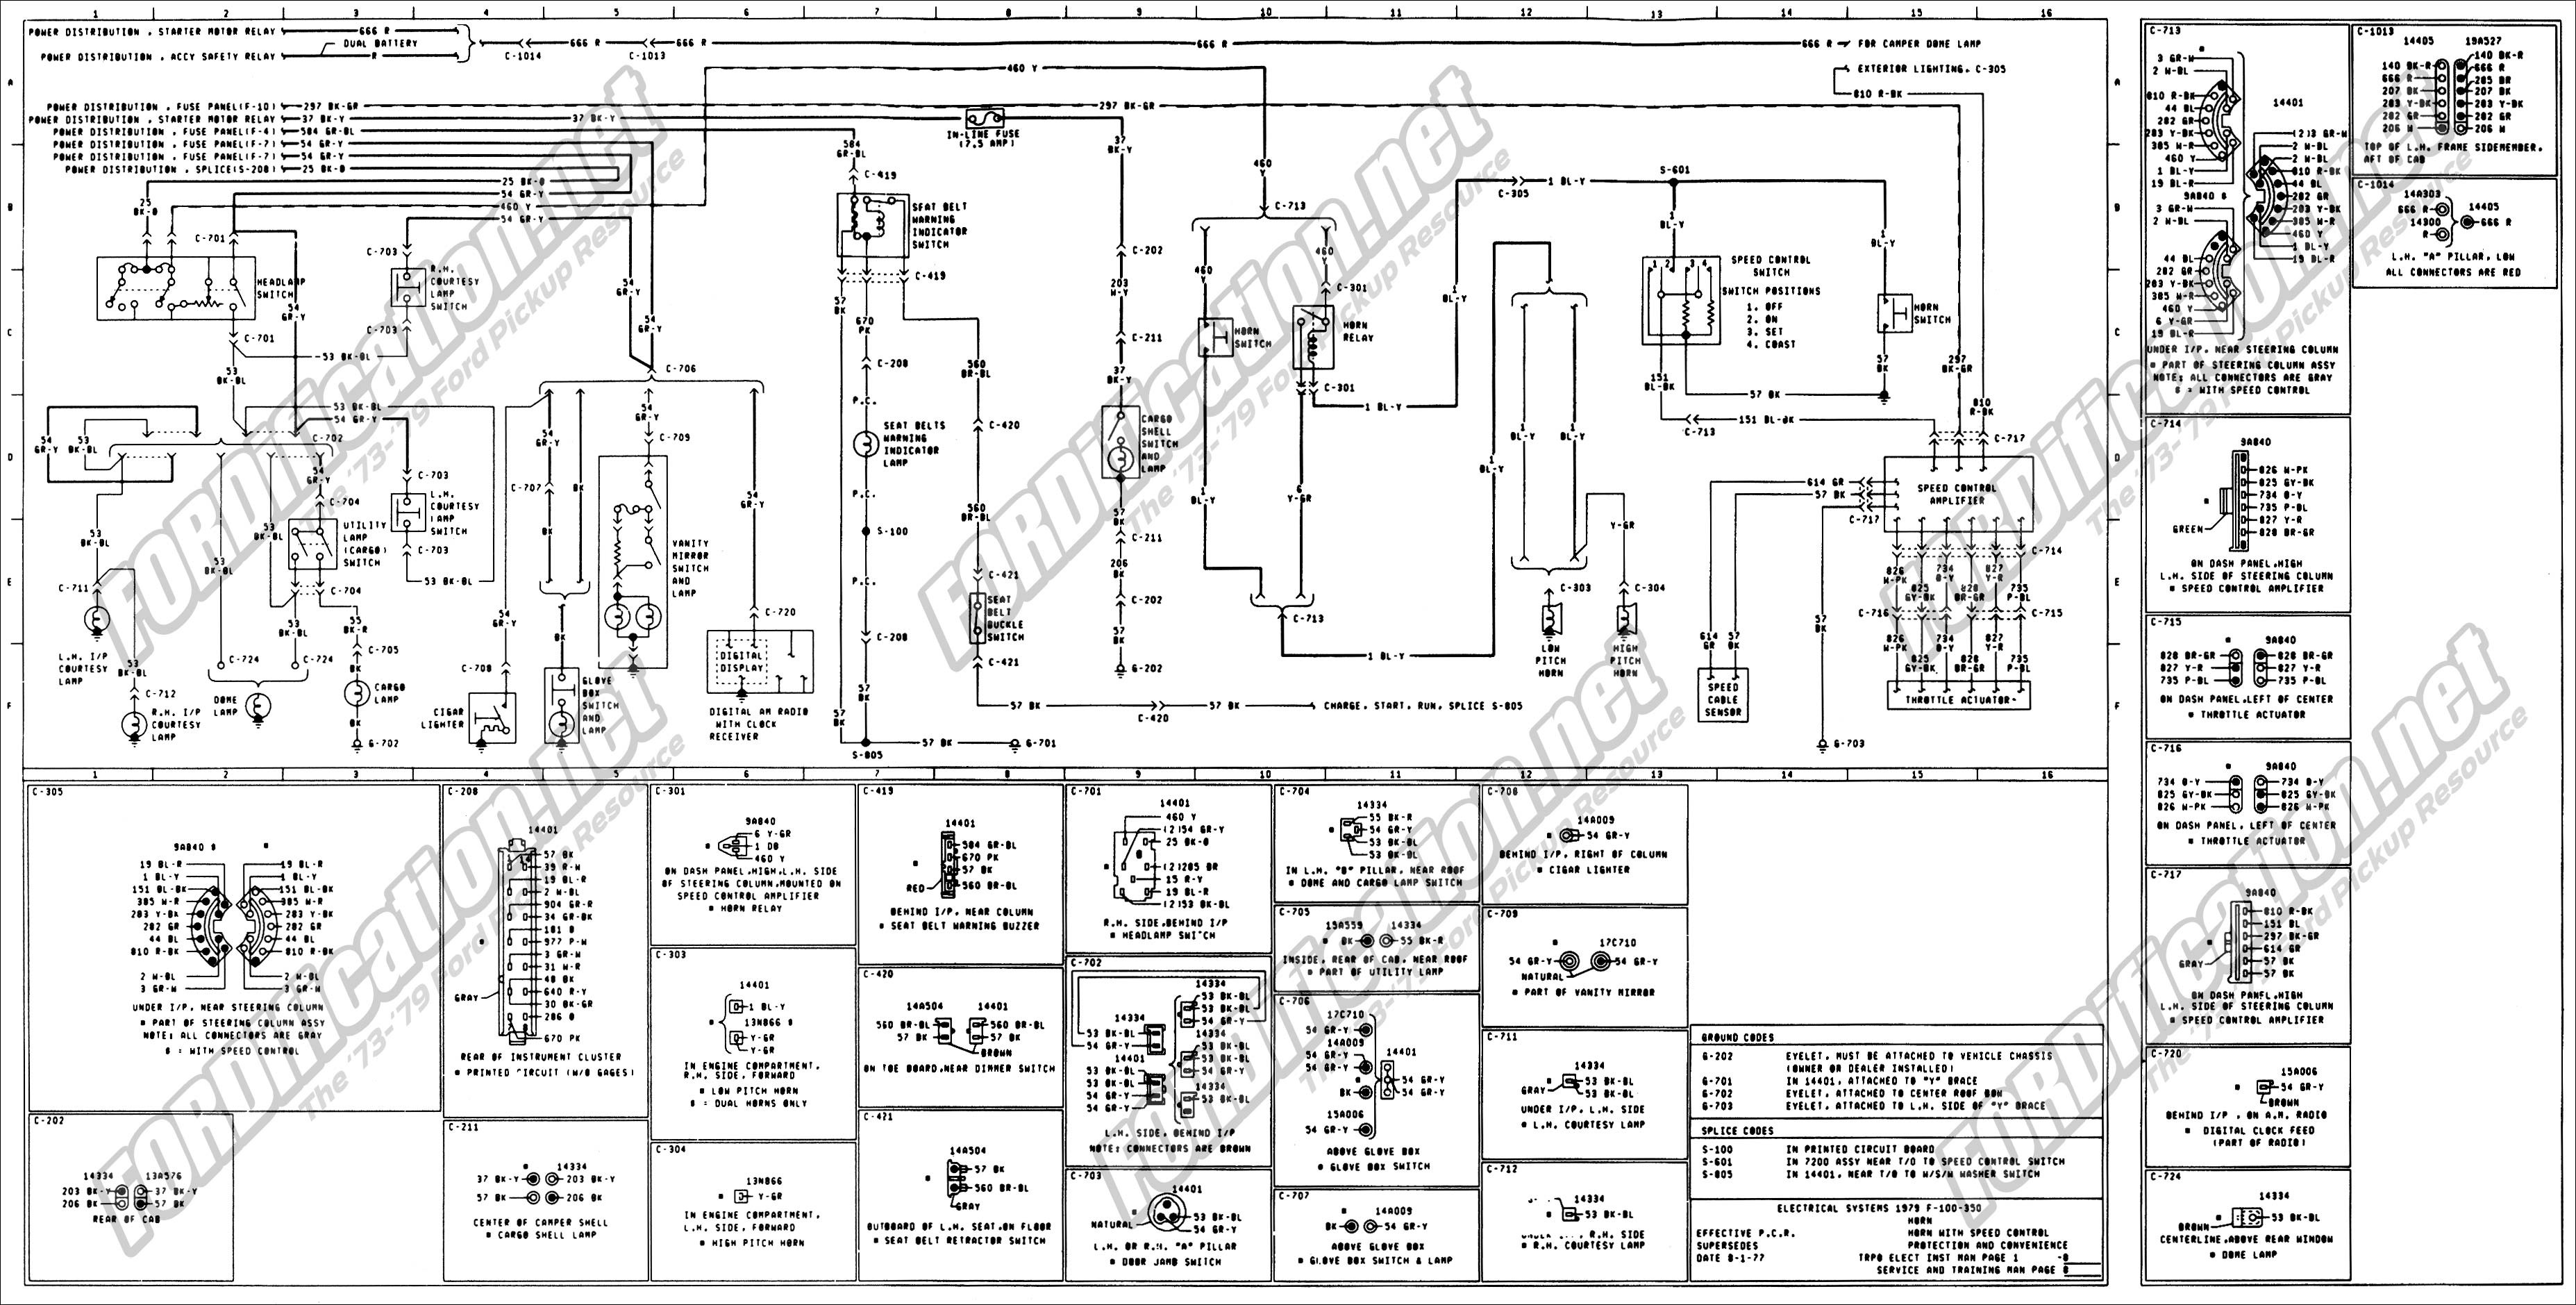 Fuse Box Diagram 1998 Ford Truck Wiring Library 98 F 150 V6 F150 4 2 Diagrams